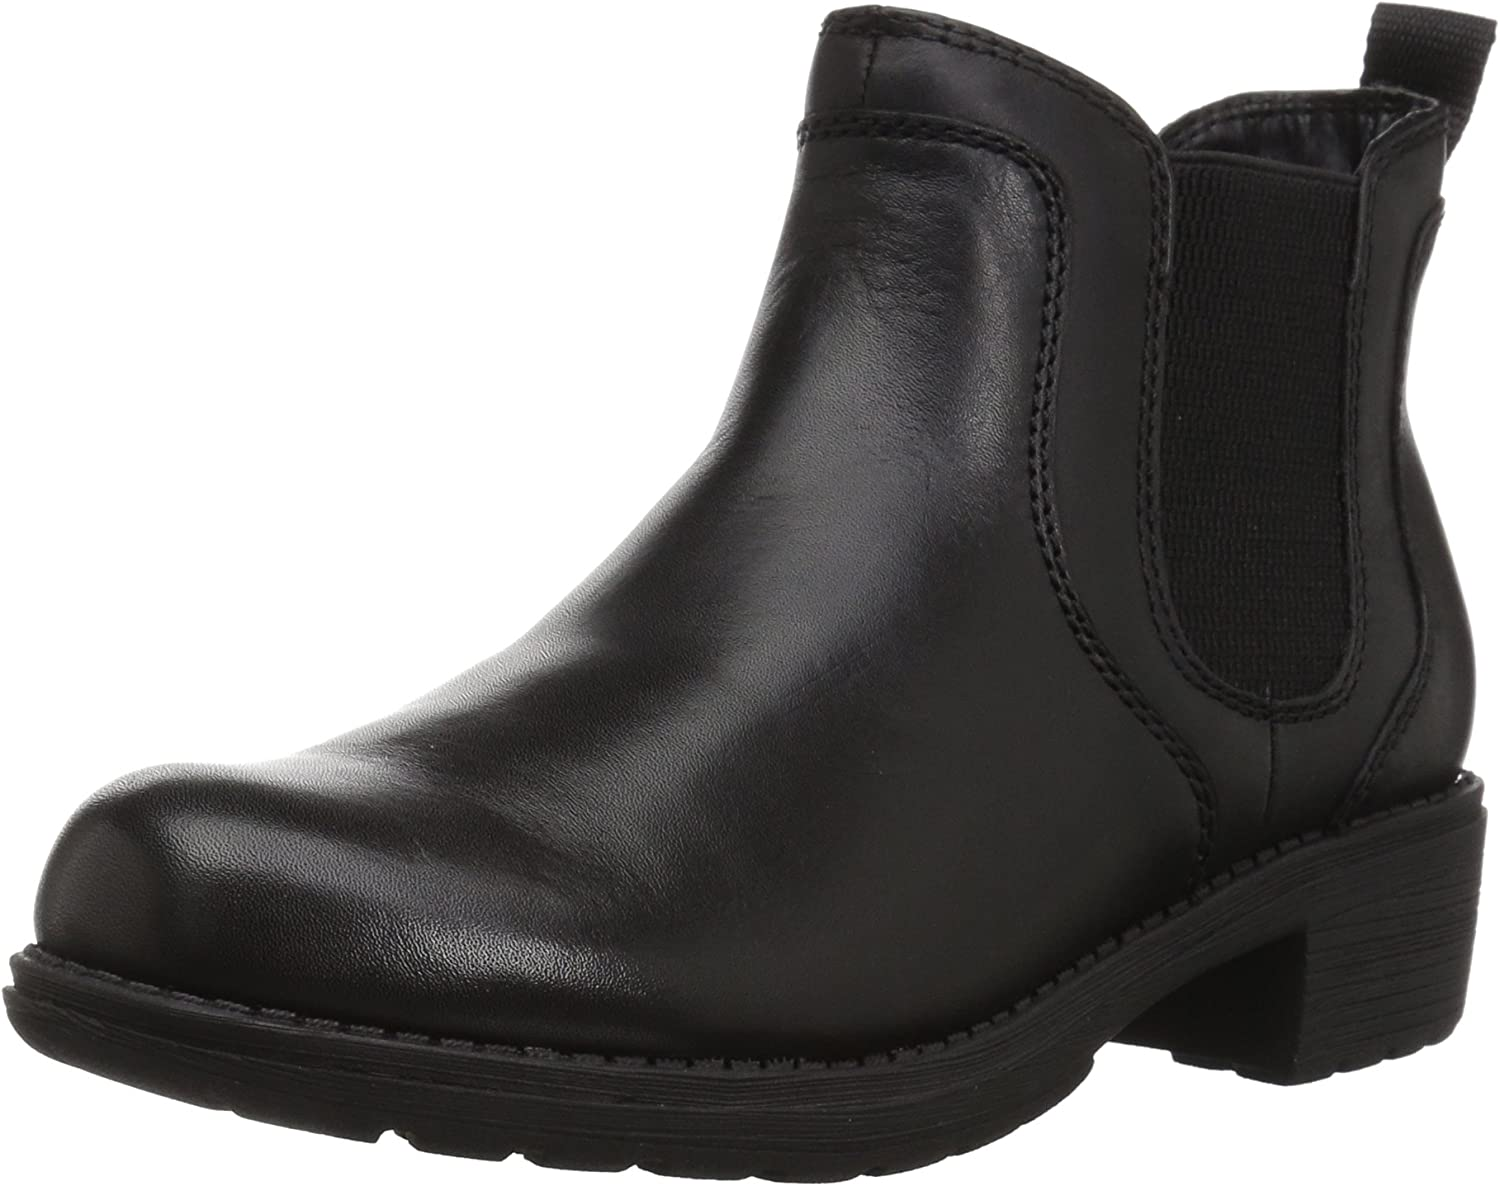 Vintage Boots- Winter Rain and Snow Boots History Eastland Womens Double Up Chelsea Boot $175.04 AT vintagedancer.com